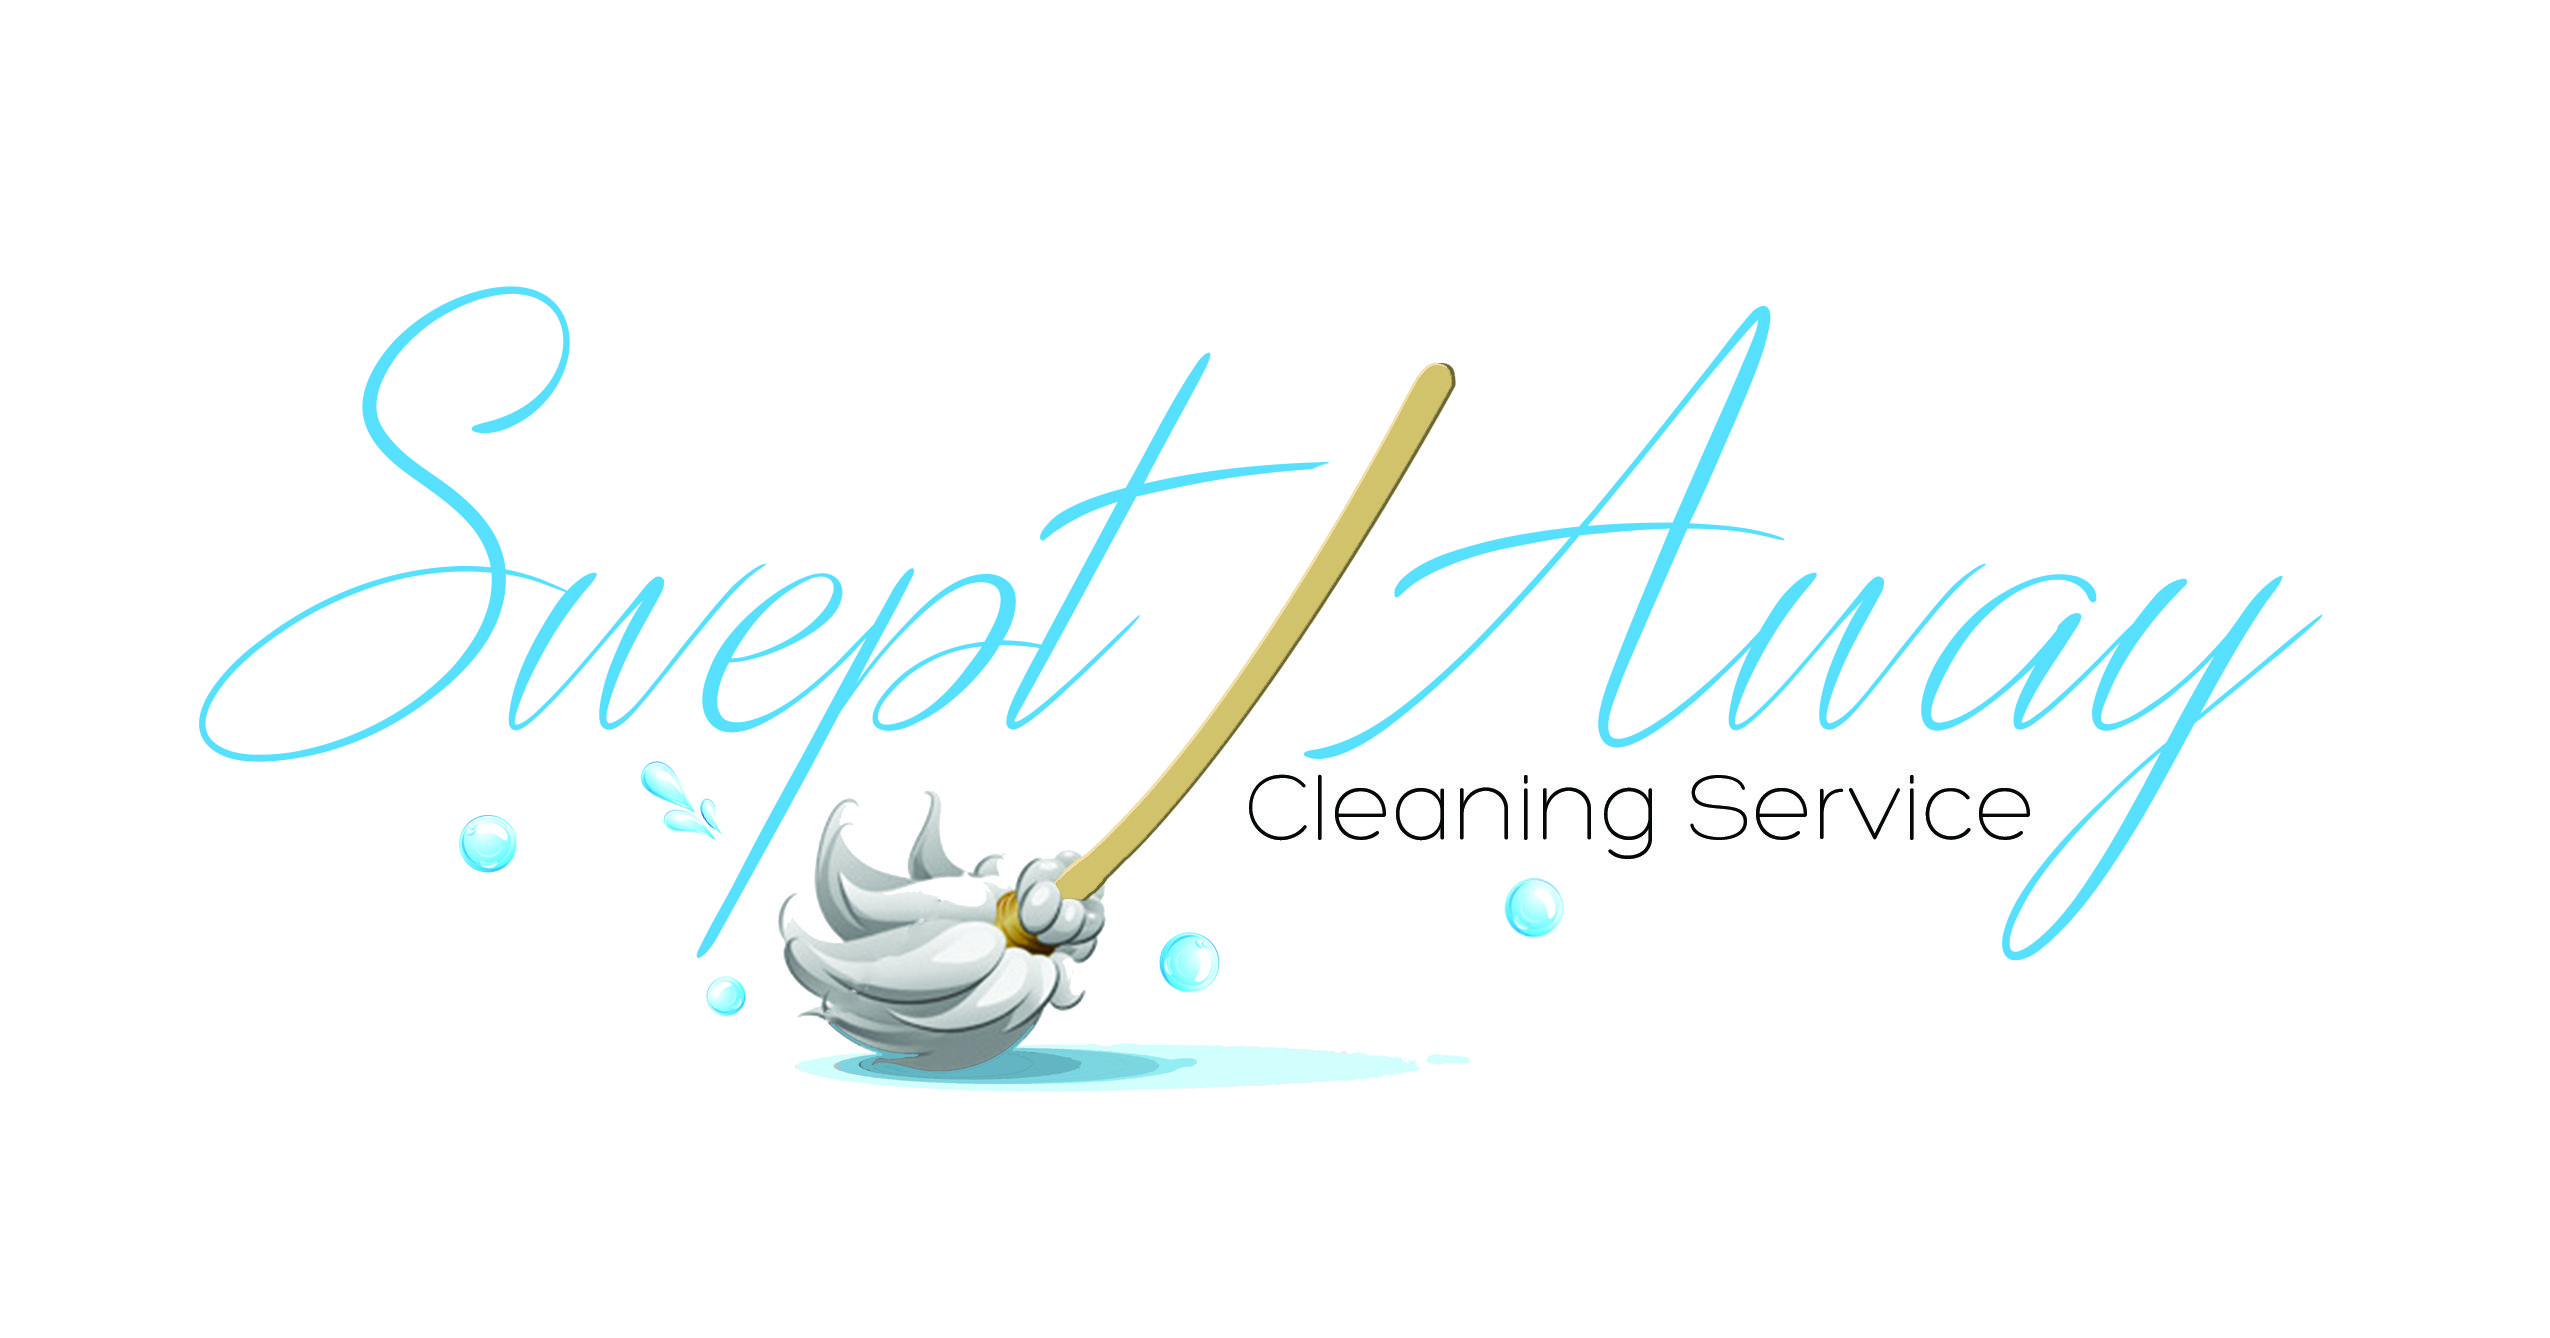 cleaning service logo design by dreamhouse marketing